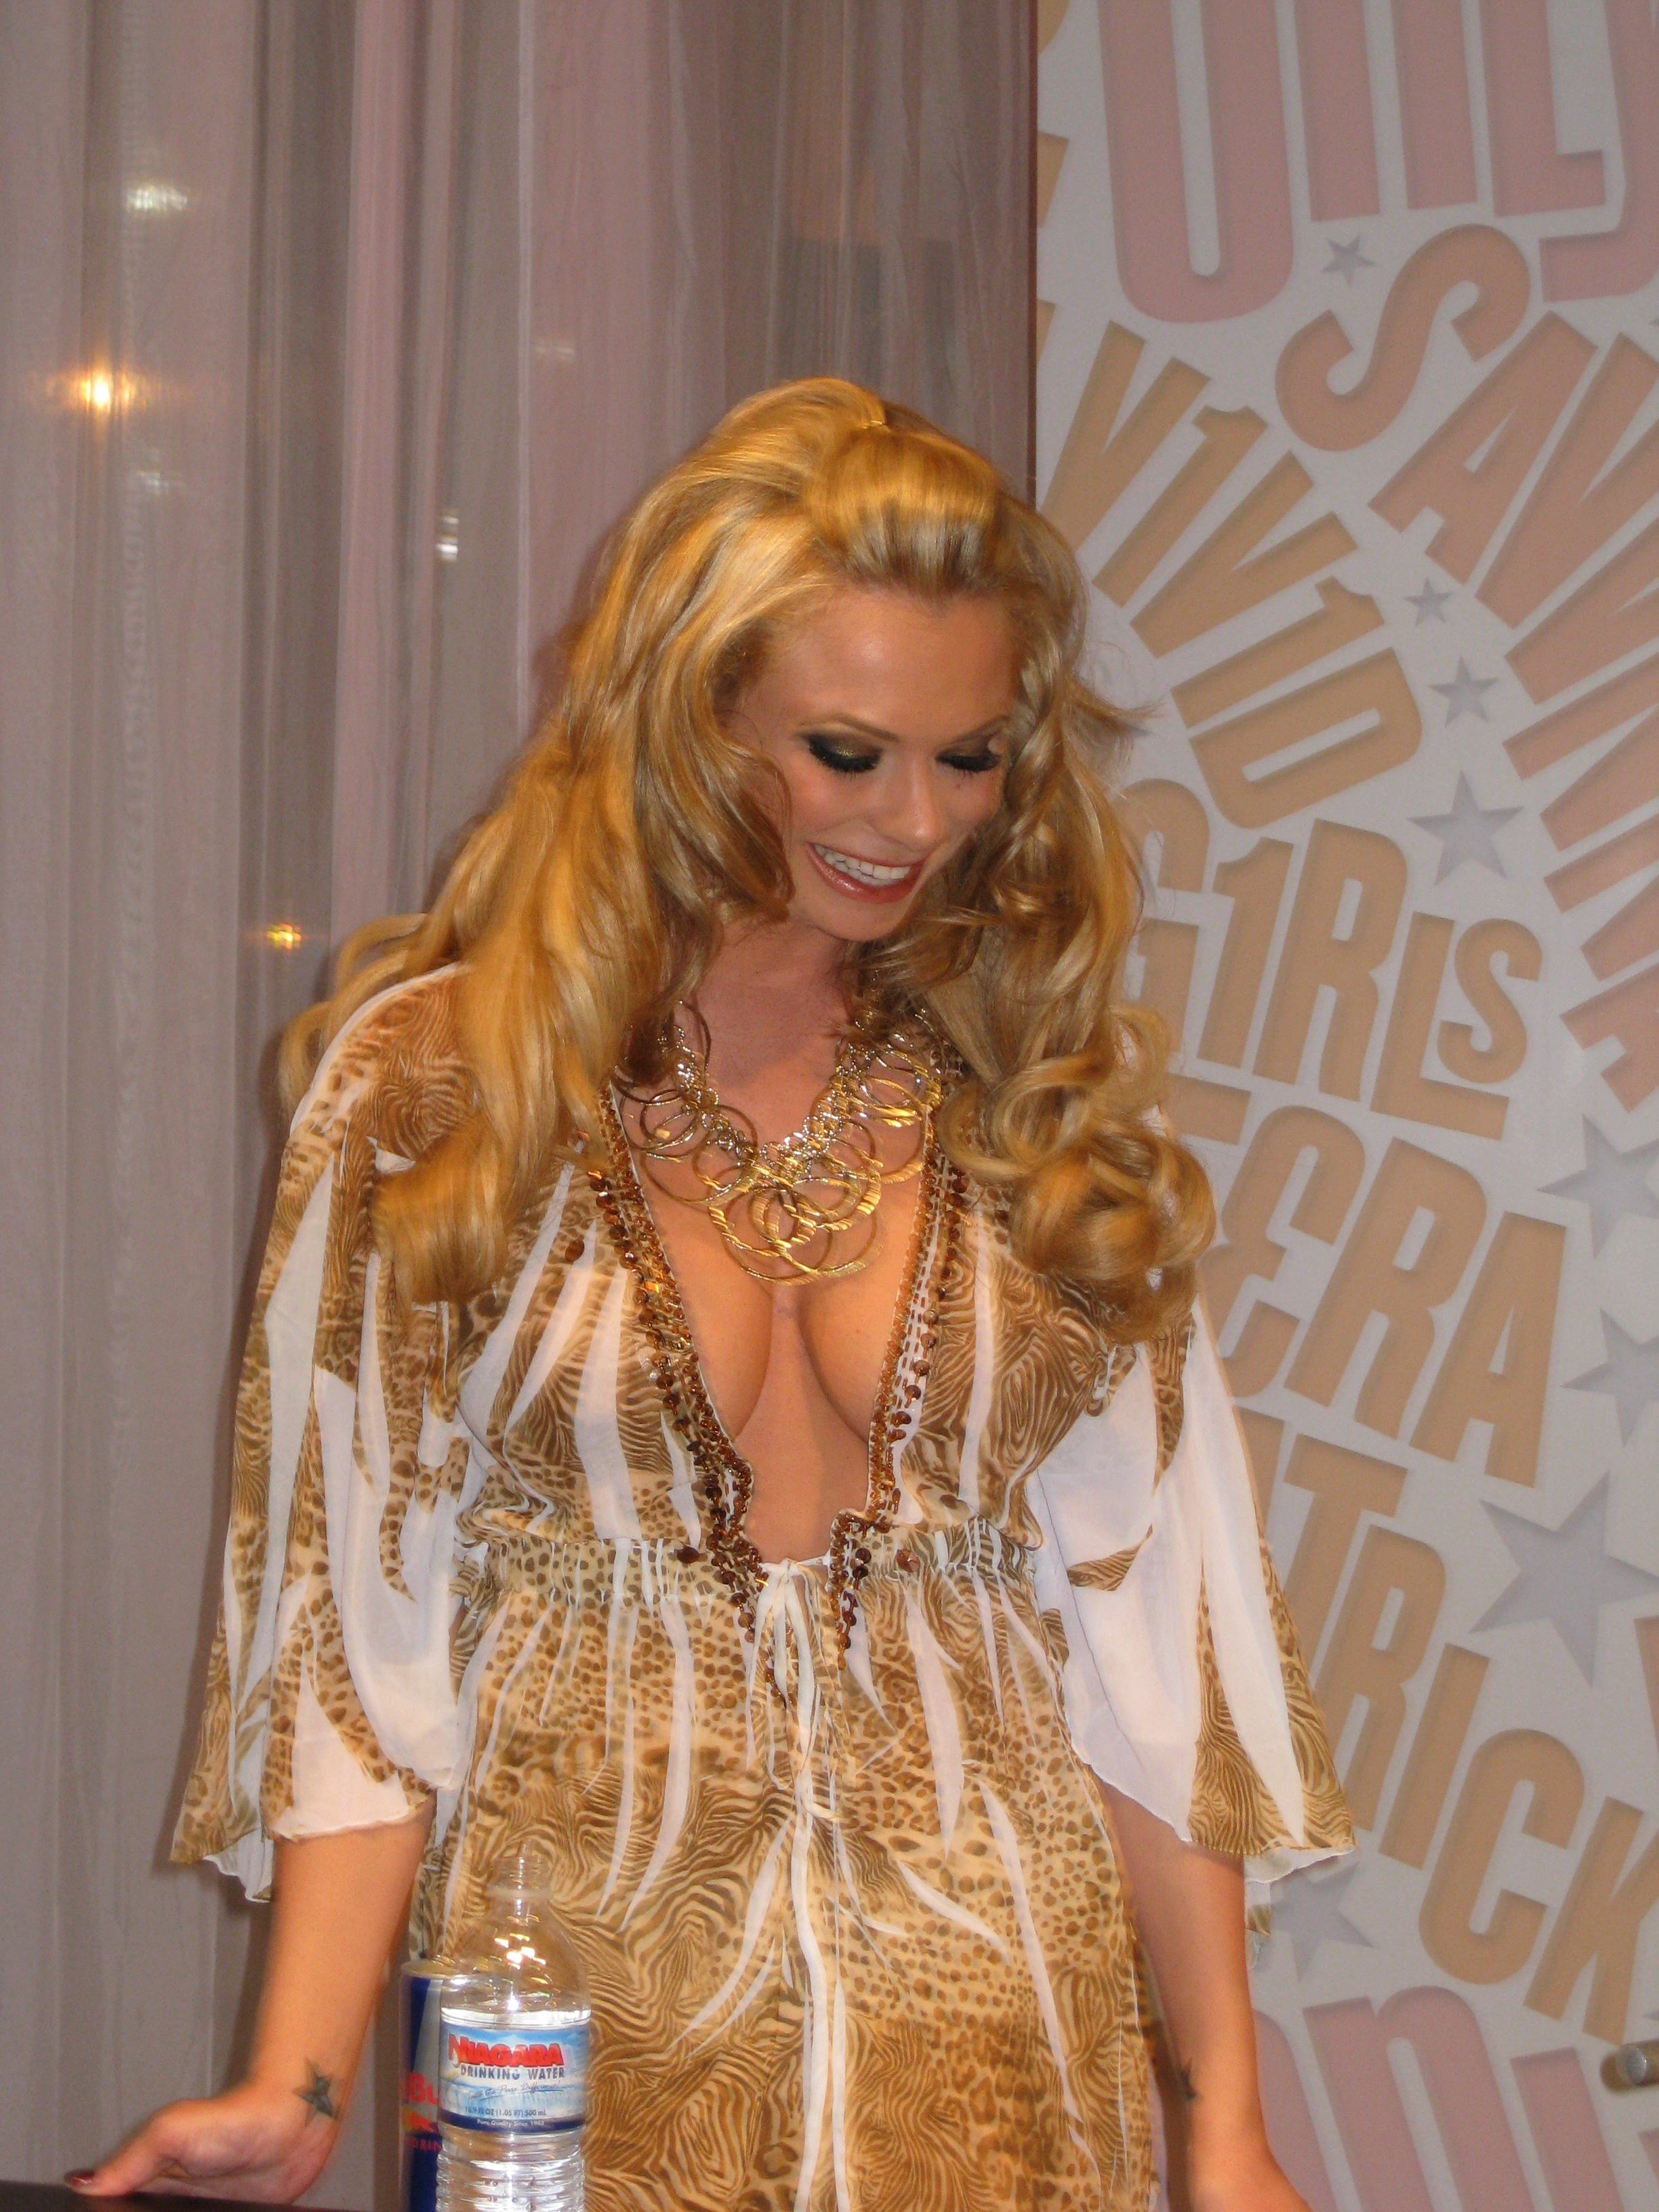 Briana Banks nude (91 foto and video), Ass, Fappening, Twitter, cameltoe 2019